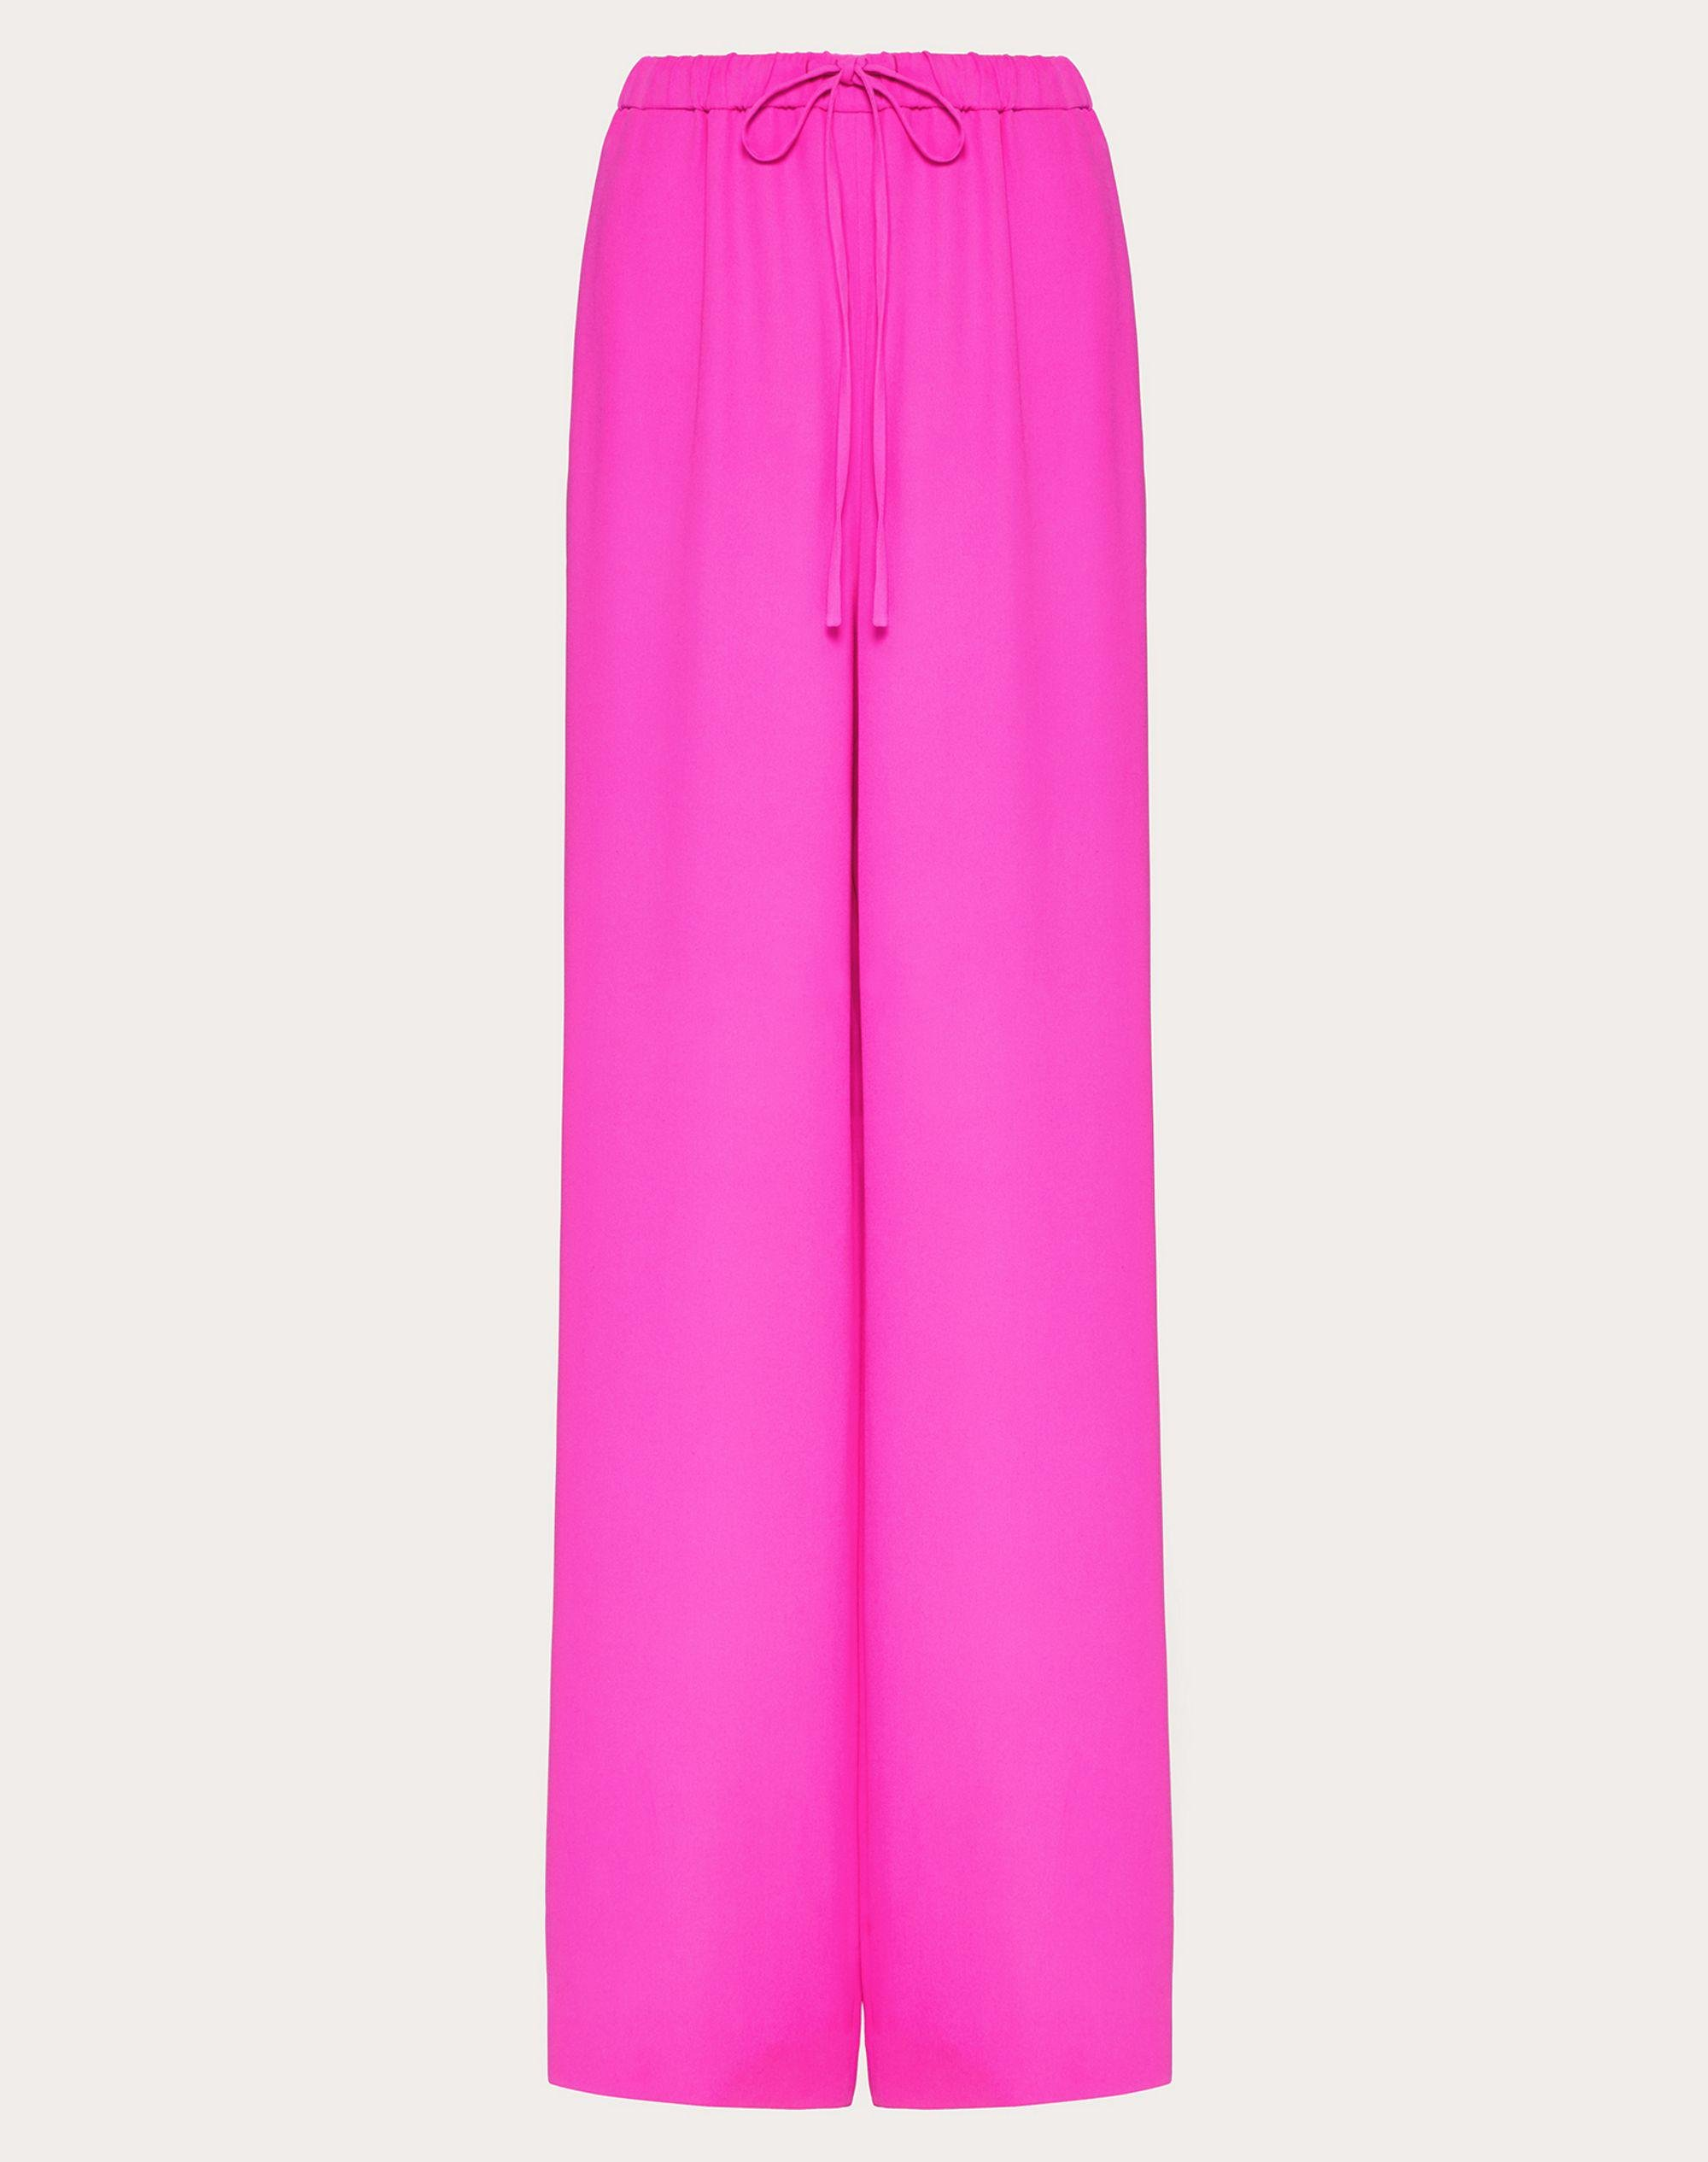 CADY COUTURE PANTS 1